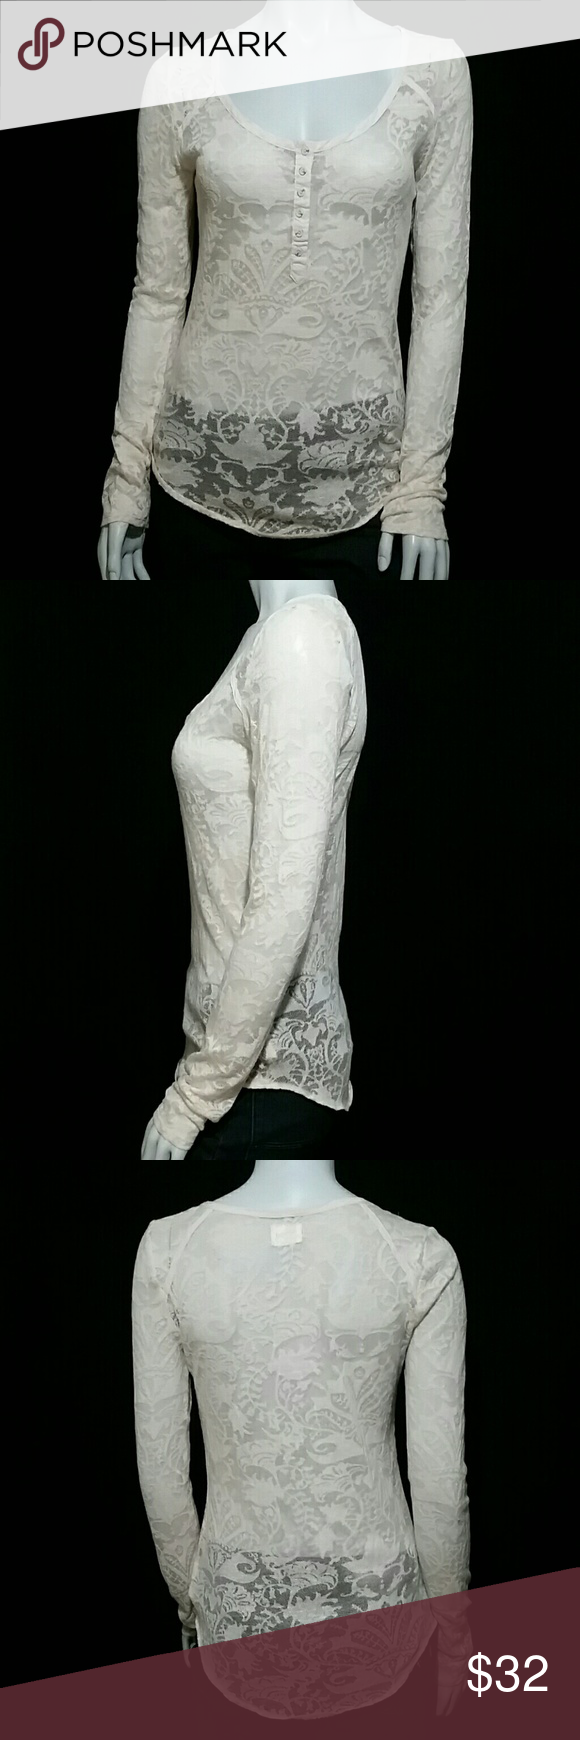 """Lace cream Henley shirt long sleeve Free People Gorgeous shirt by Intimately Free People Long sleeves  Button front- henly style Scoop neck collar  Cream floral lace  Measurements taken with item laying flat  Length: 28"""" or 71.12 cm (back of collar to hem)  Waist: 17"""" or 43.18 cm  Armpit to armpit: 20"""" or 50.80 cm  Shoulder to shoulder: 16"""" or 40.64 cm (back seam to seam)  Sleeve length: 28"""" or 71.12 cm Free People Tops Blouses"""